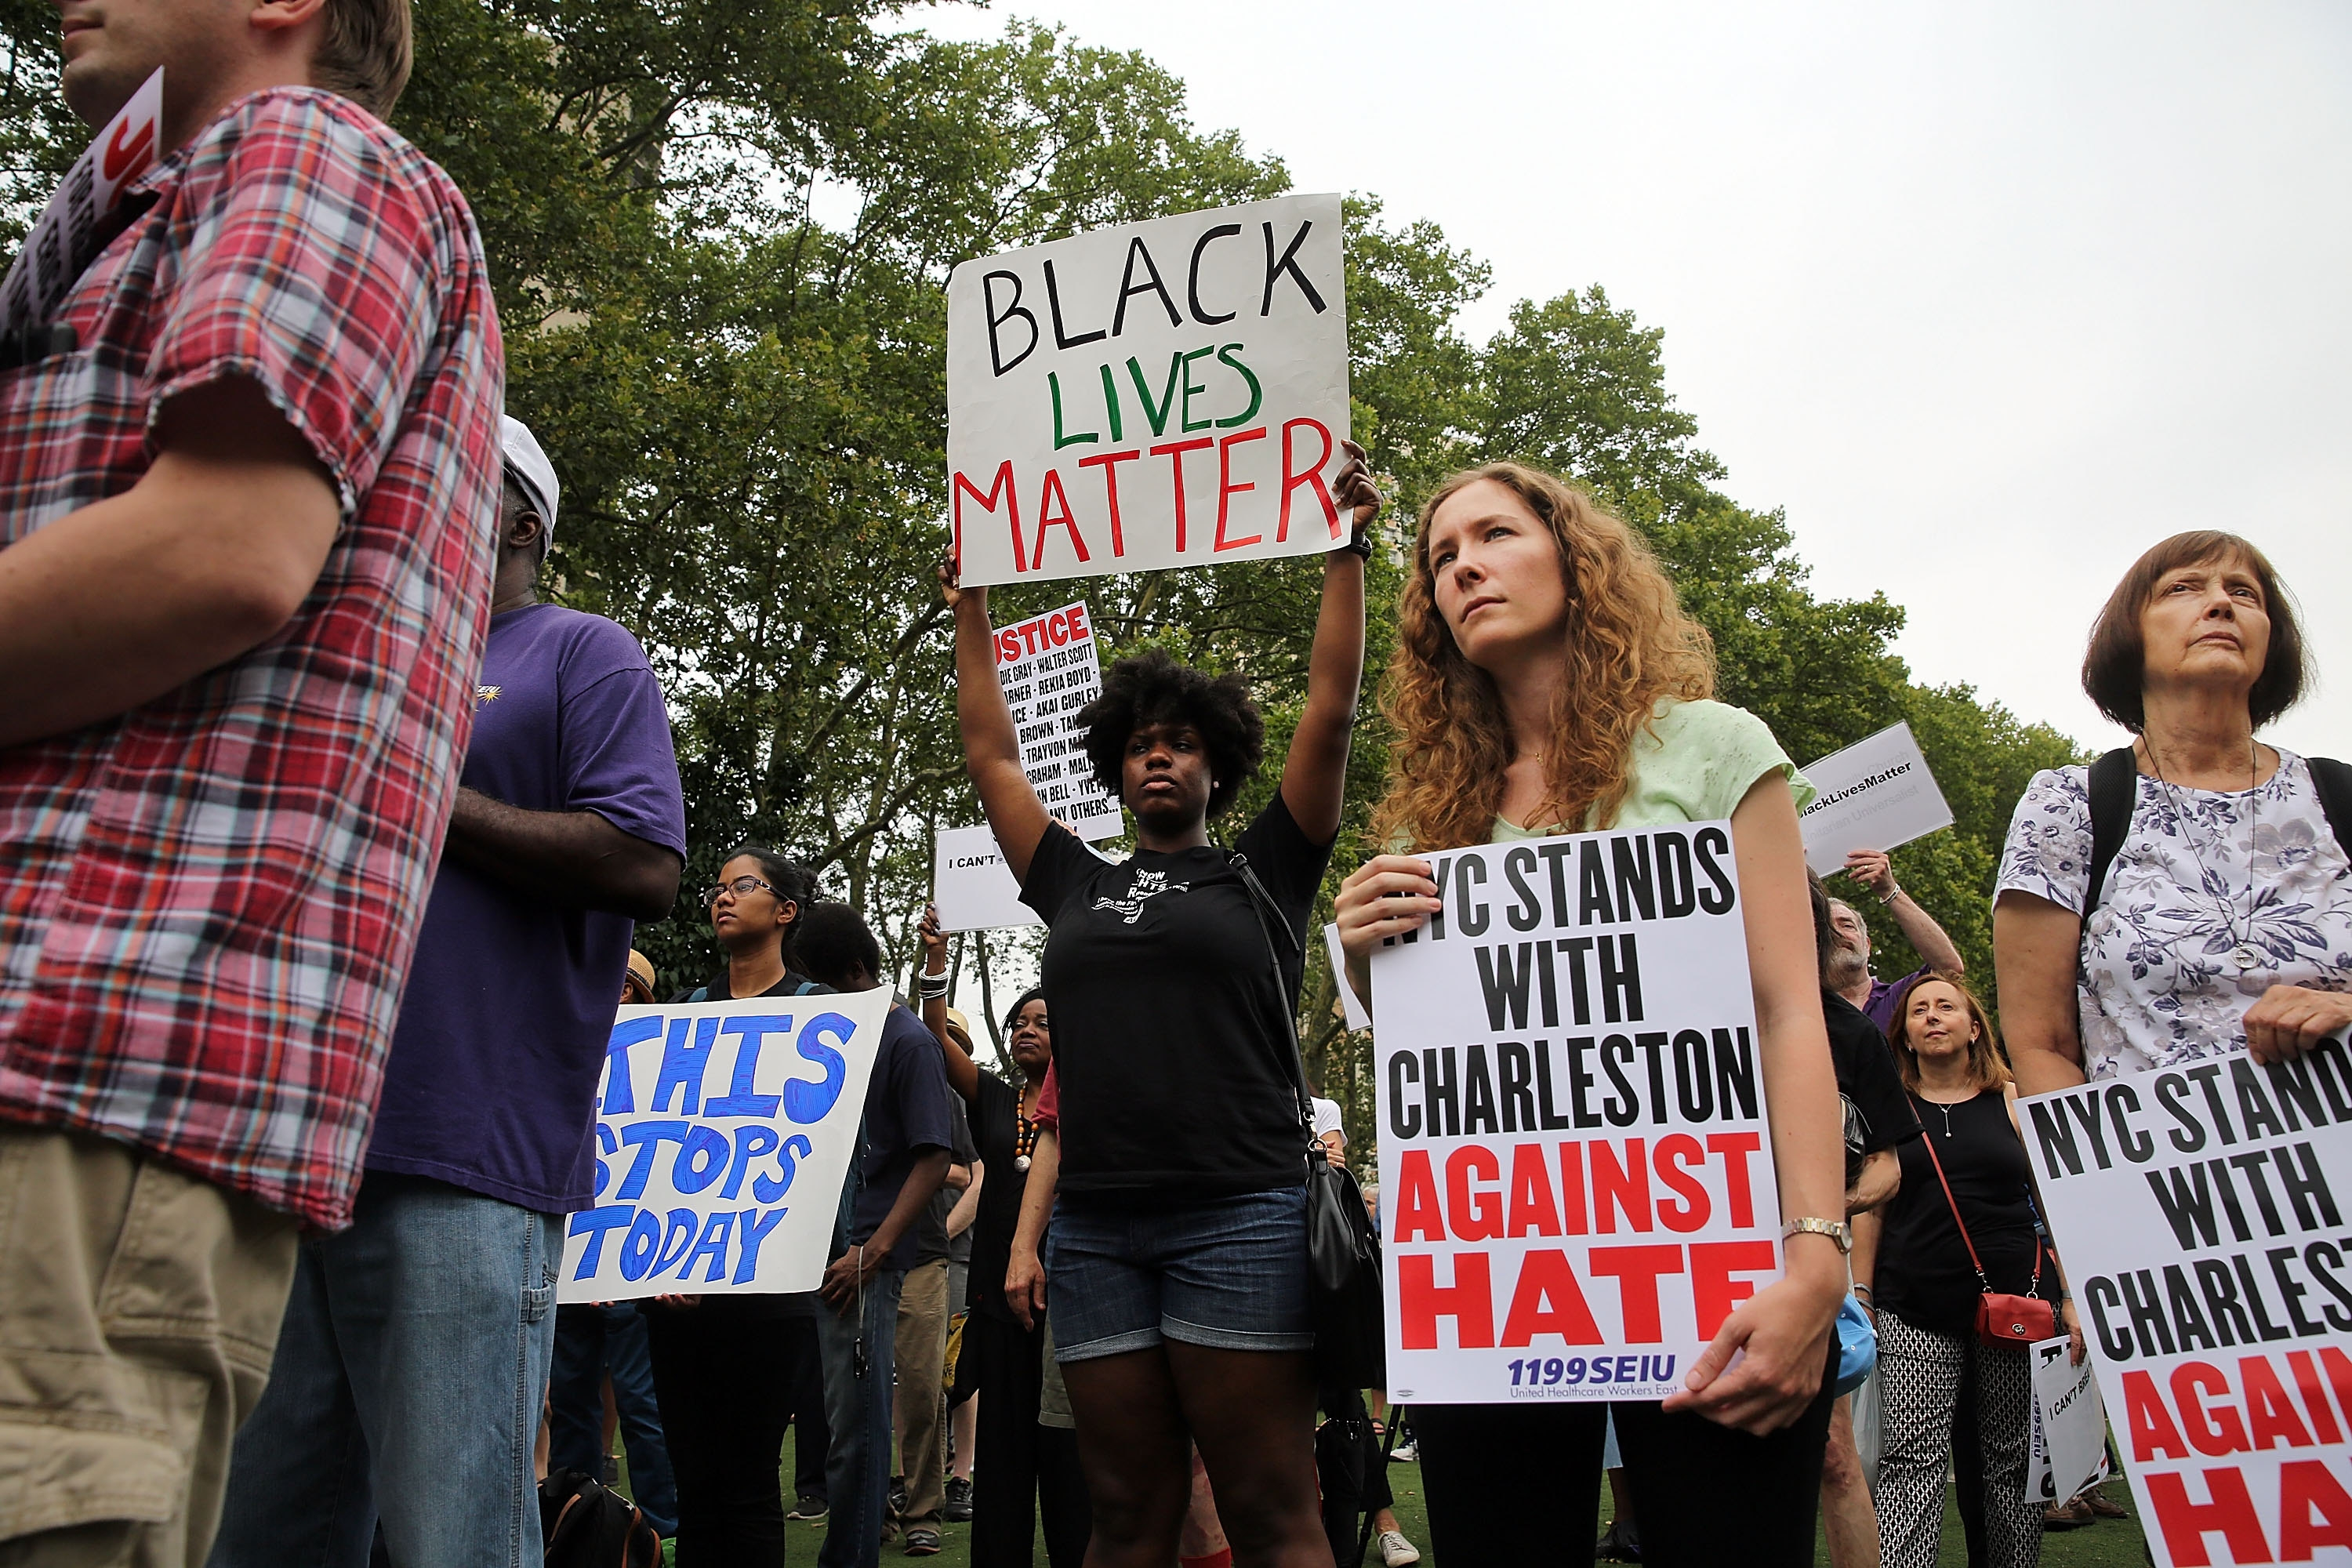 A string of killings of black men by police has shaken confidence in law enforcement, and sparked demonstrations such as this one earlier this month in Brooklyn. (Getty Images)